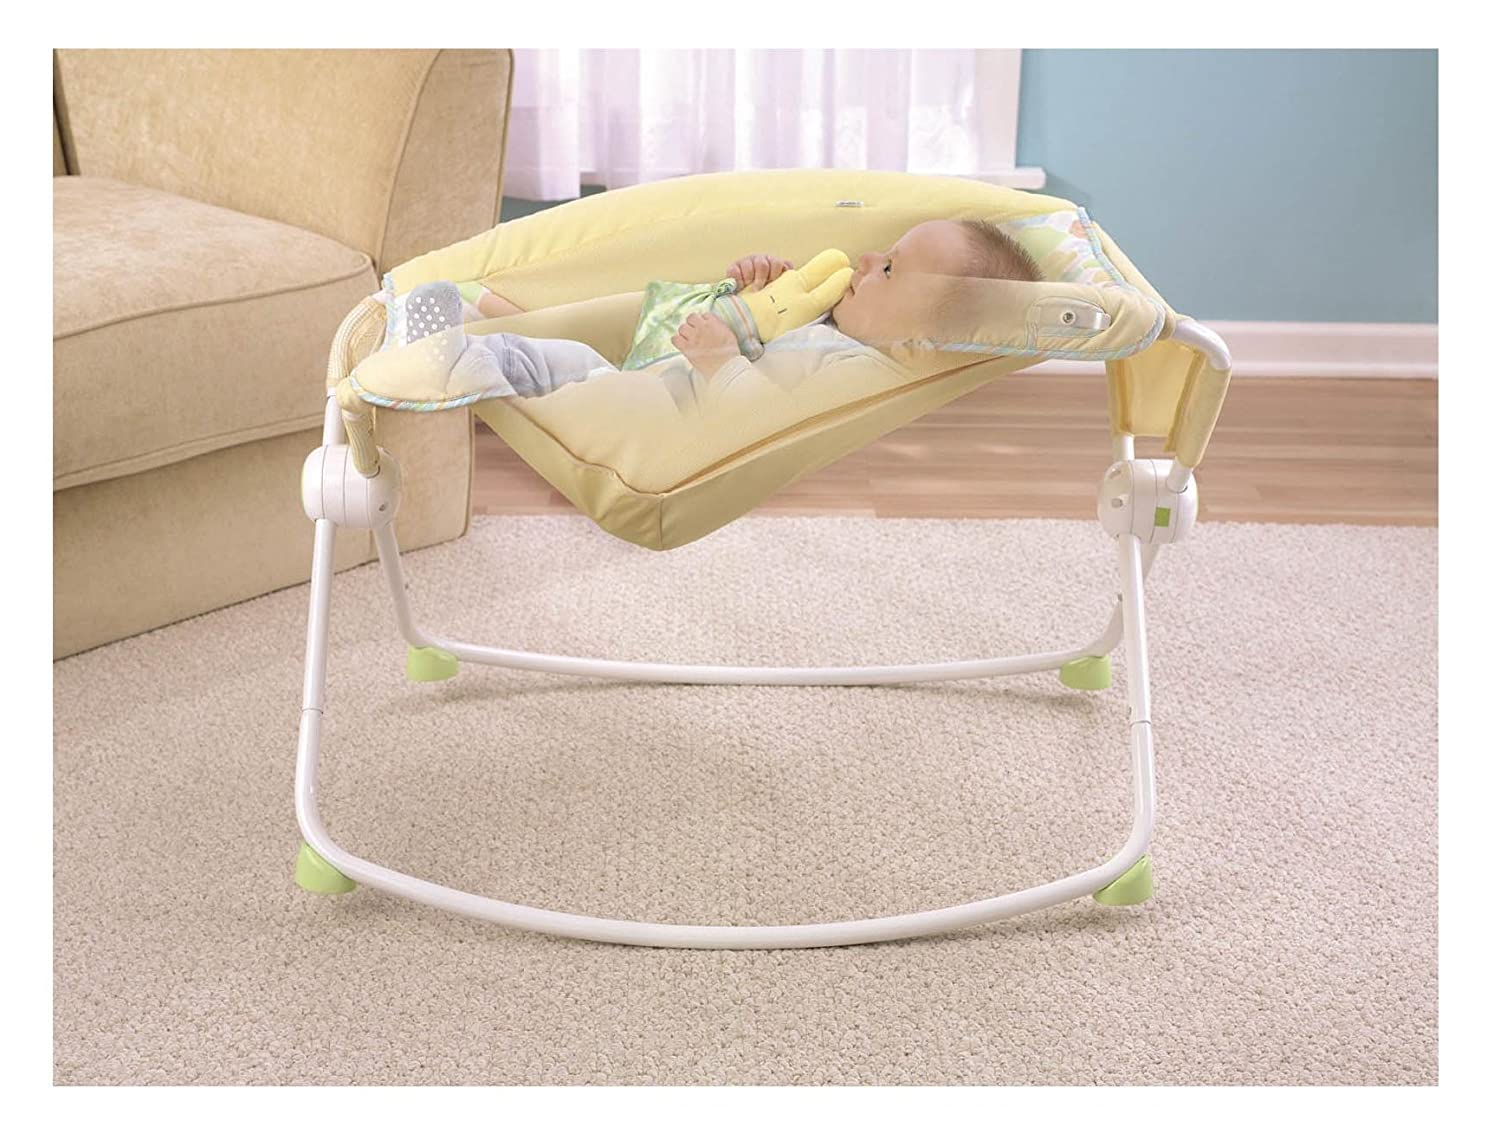 Baby bed for reflux - Buy Fisher Price Newborn Rock N Play Sleeper Yellow Online At Low Prices In India Amazon In